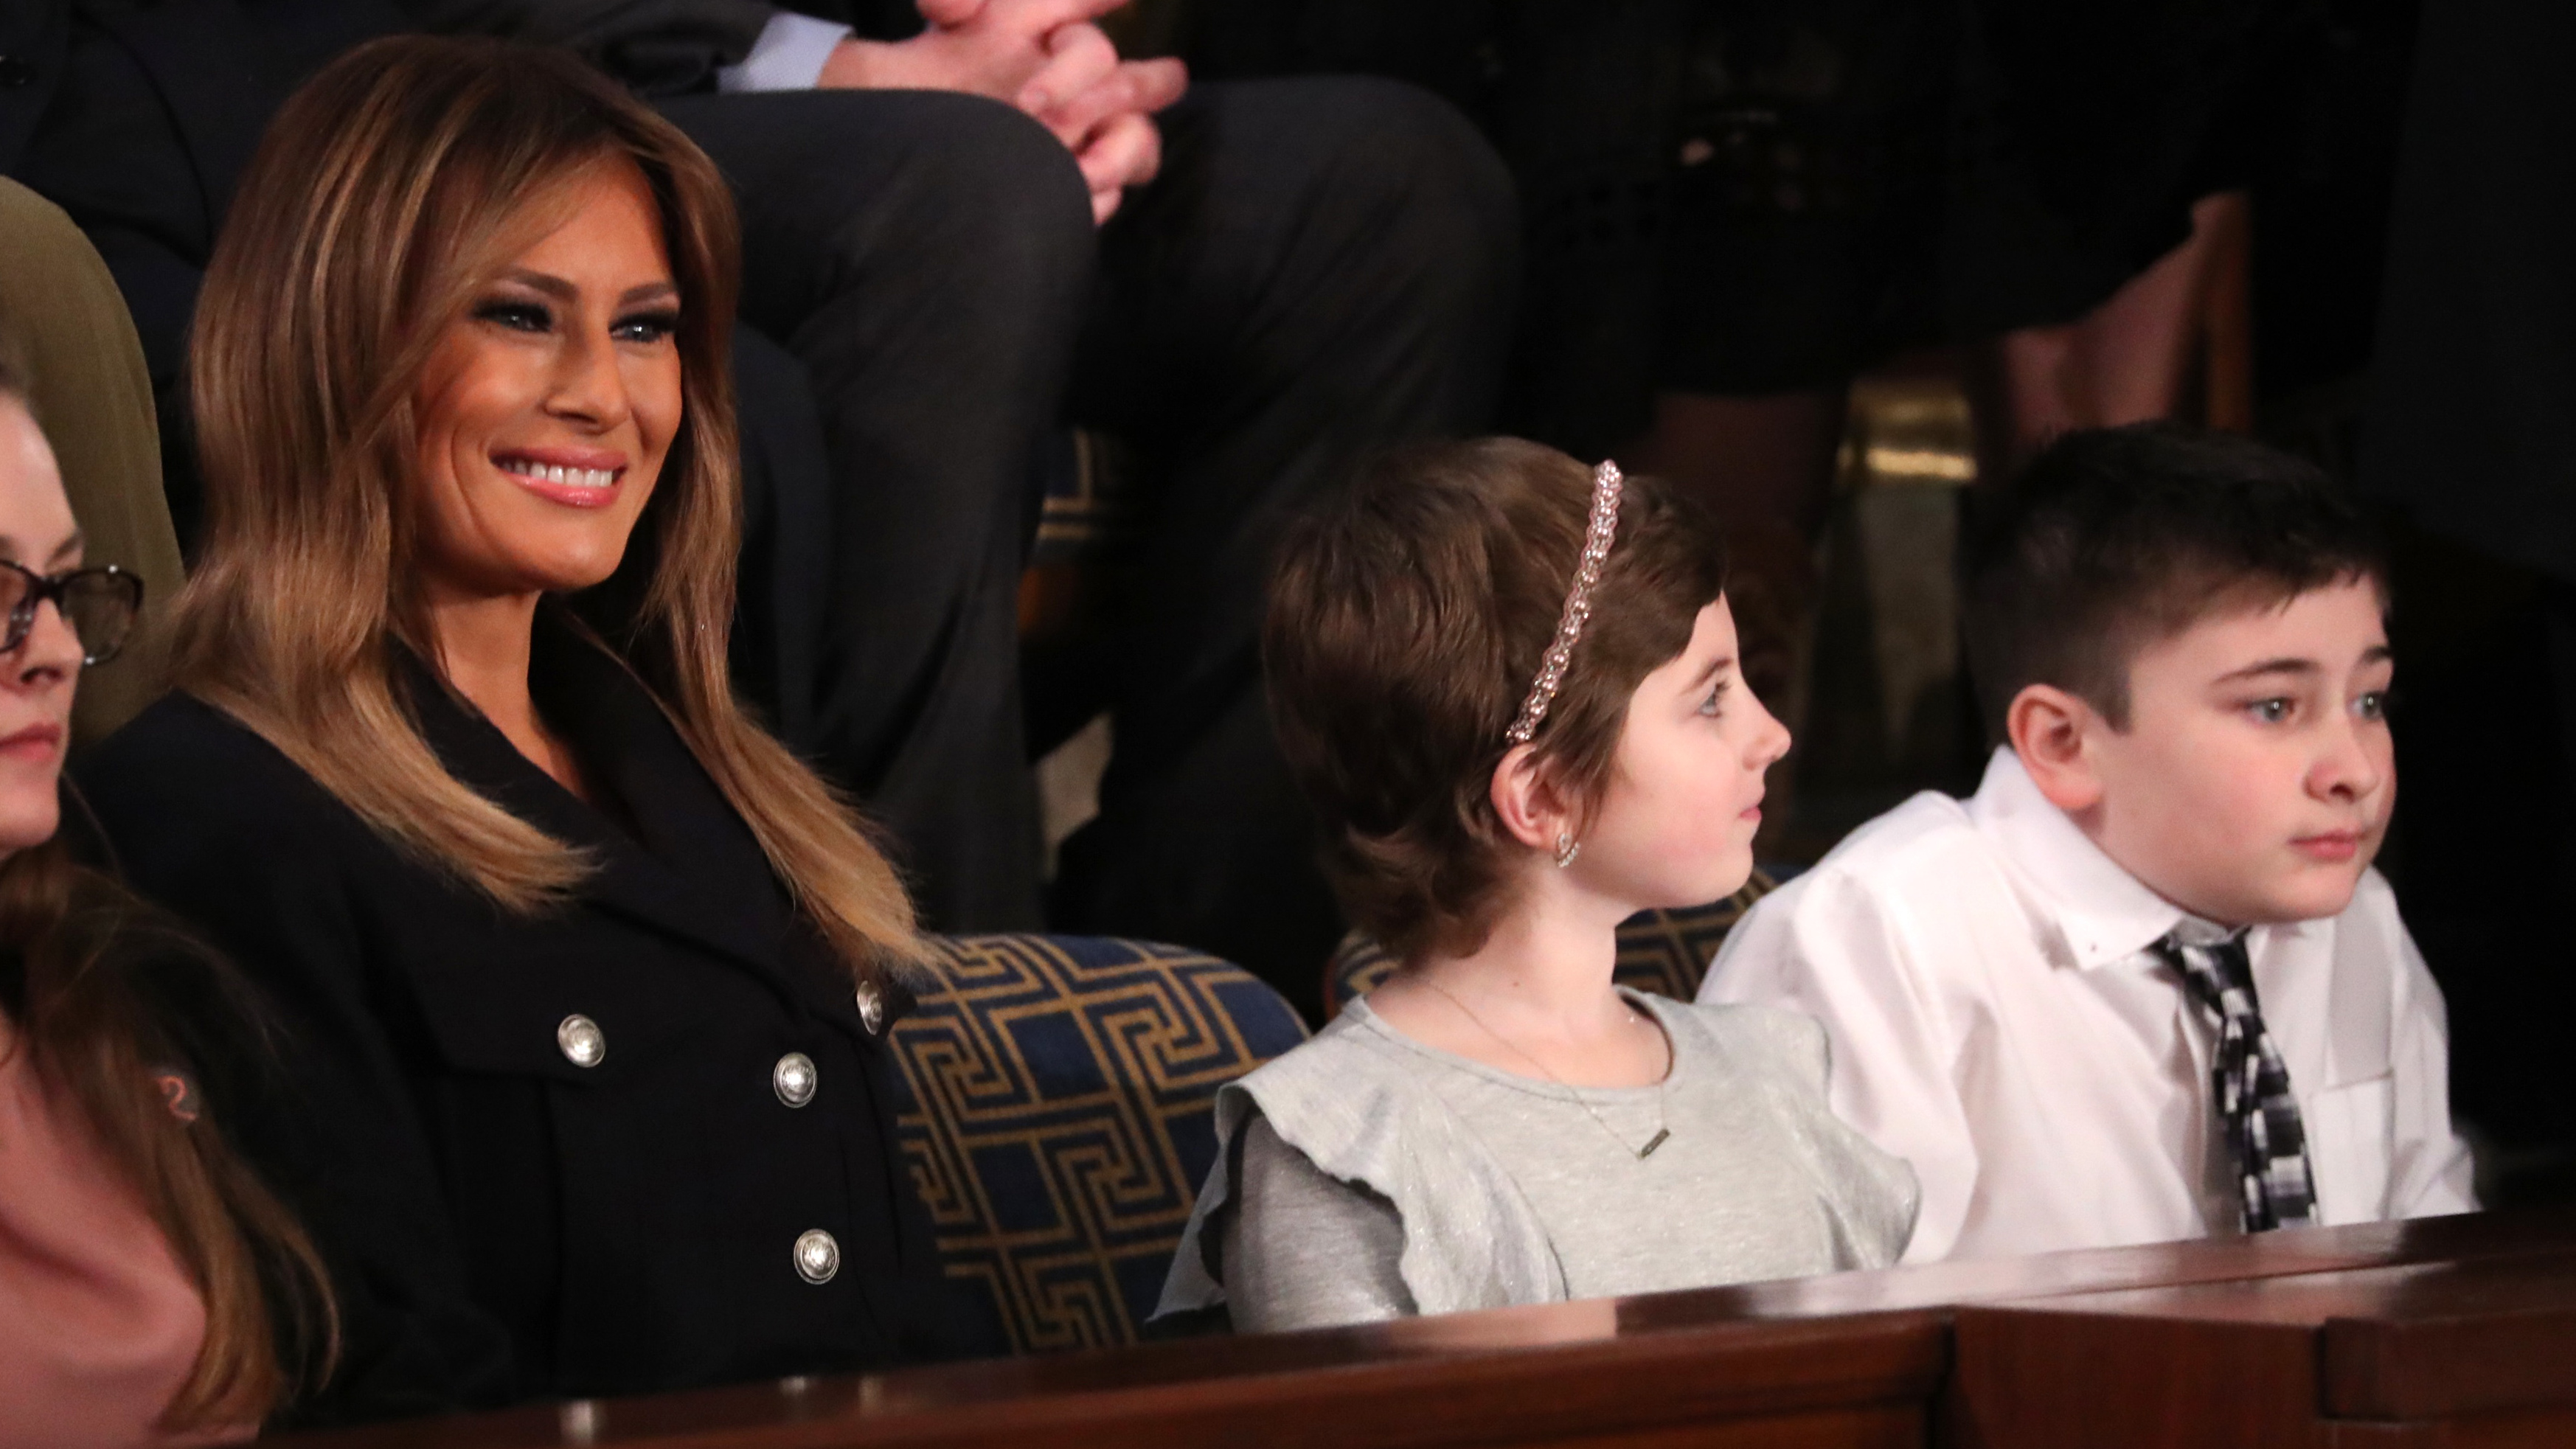 The frst lady sits with guests Grace Eline (center), a cancer survivor, and Joshua Trump (right), a Delaware student who has been bullied because of his last name, during Tuesday's State of the Union address.